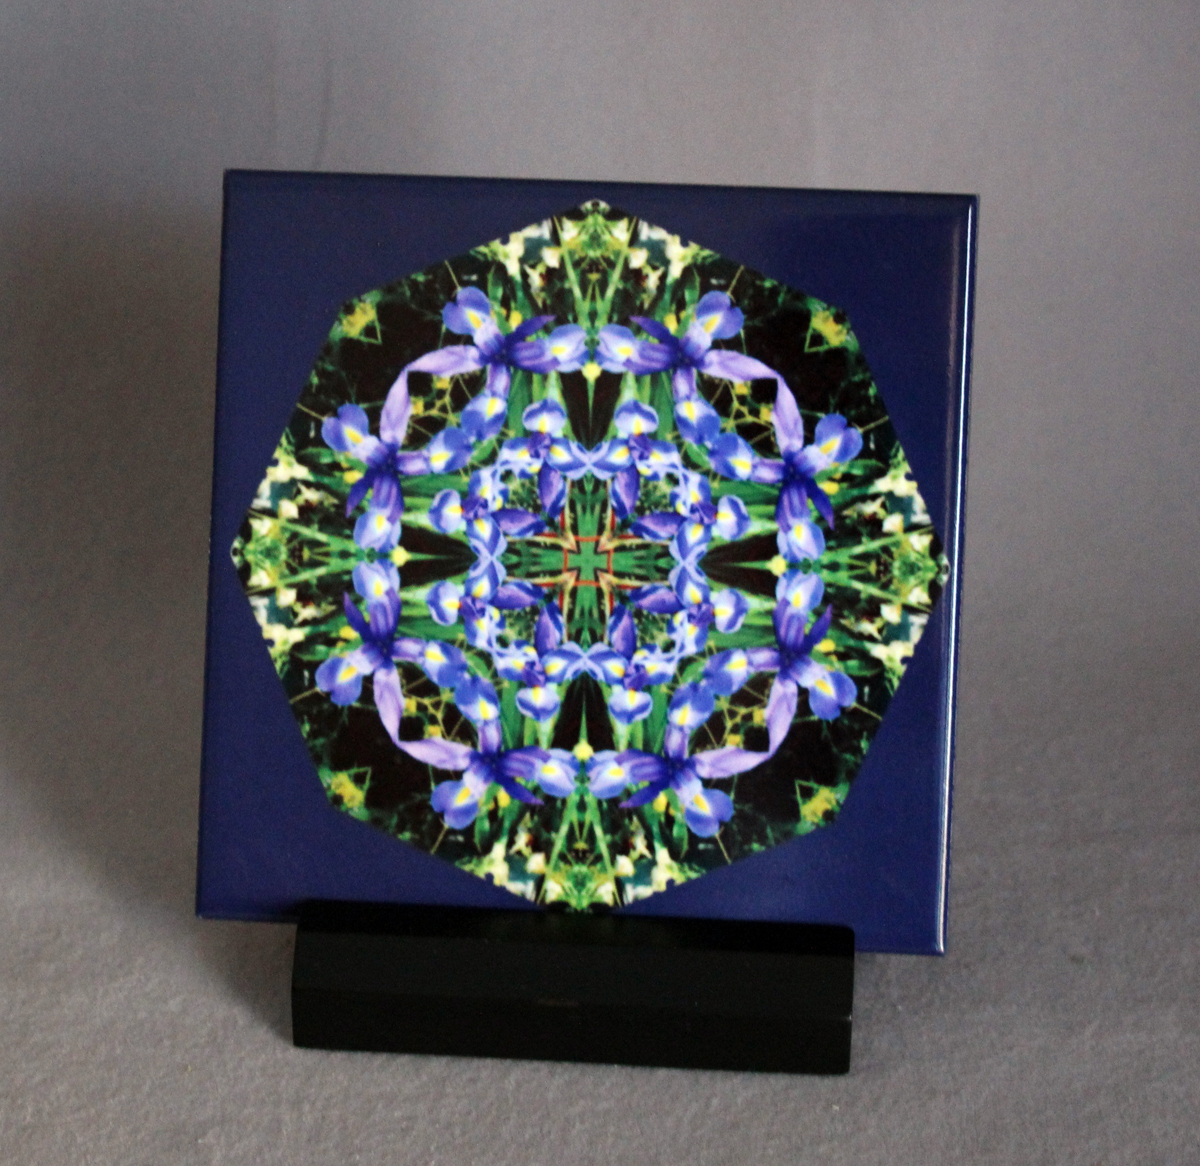 Credence Decorative Sale Special Iris Decorative Ceramic Tile Coaster Sacred Geometry Geometric Kaleidoscope Cerulean Credence